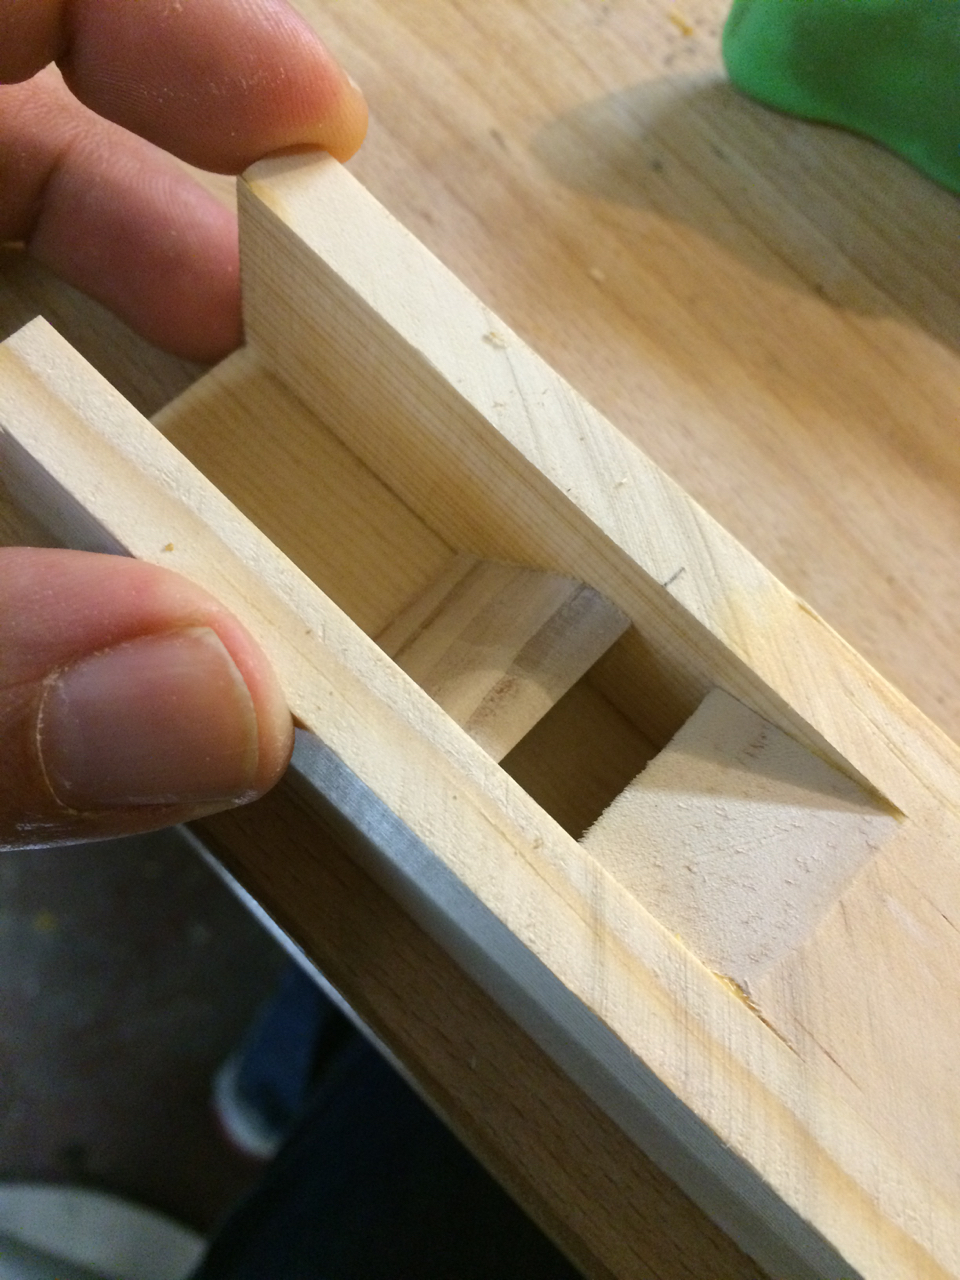 The little diverter that directs the air to the beveled edge